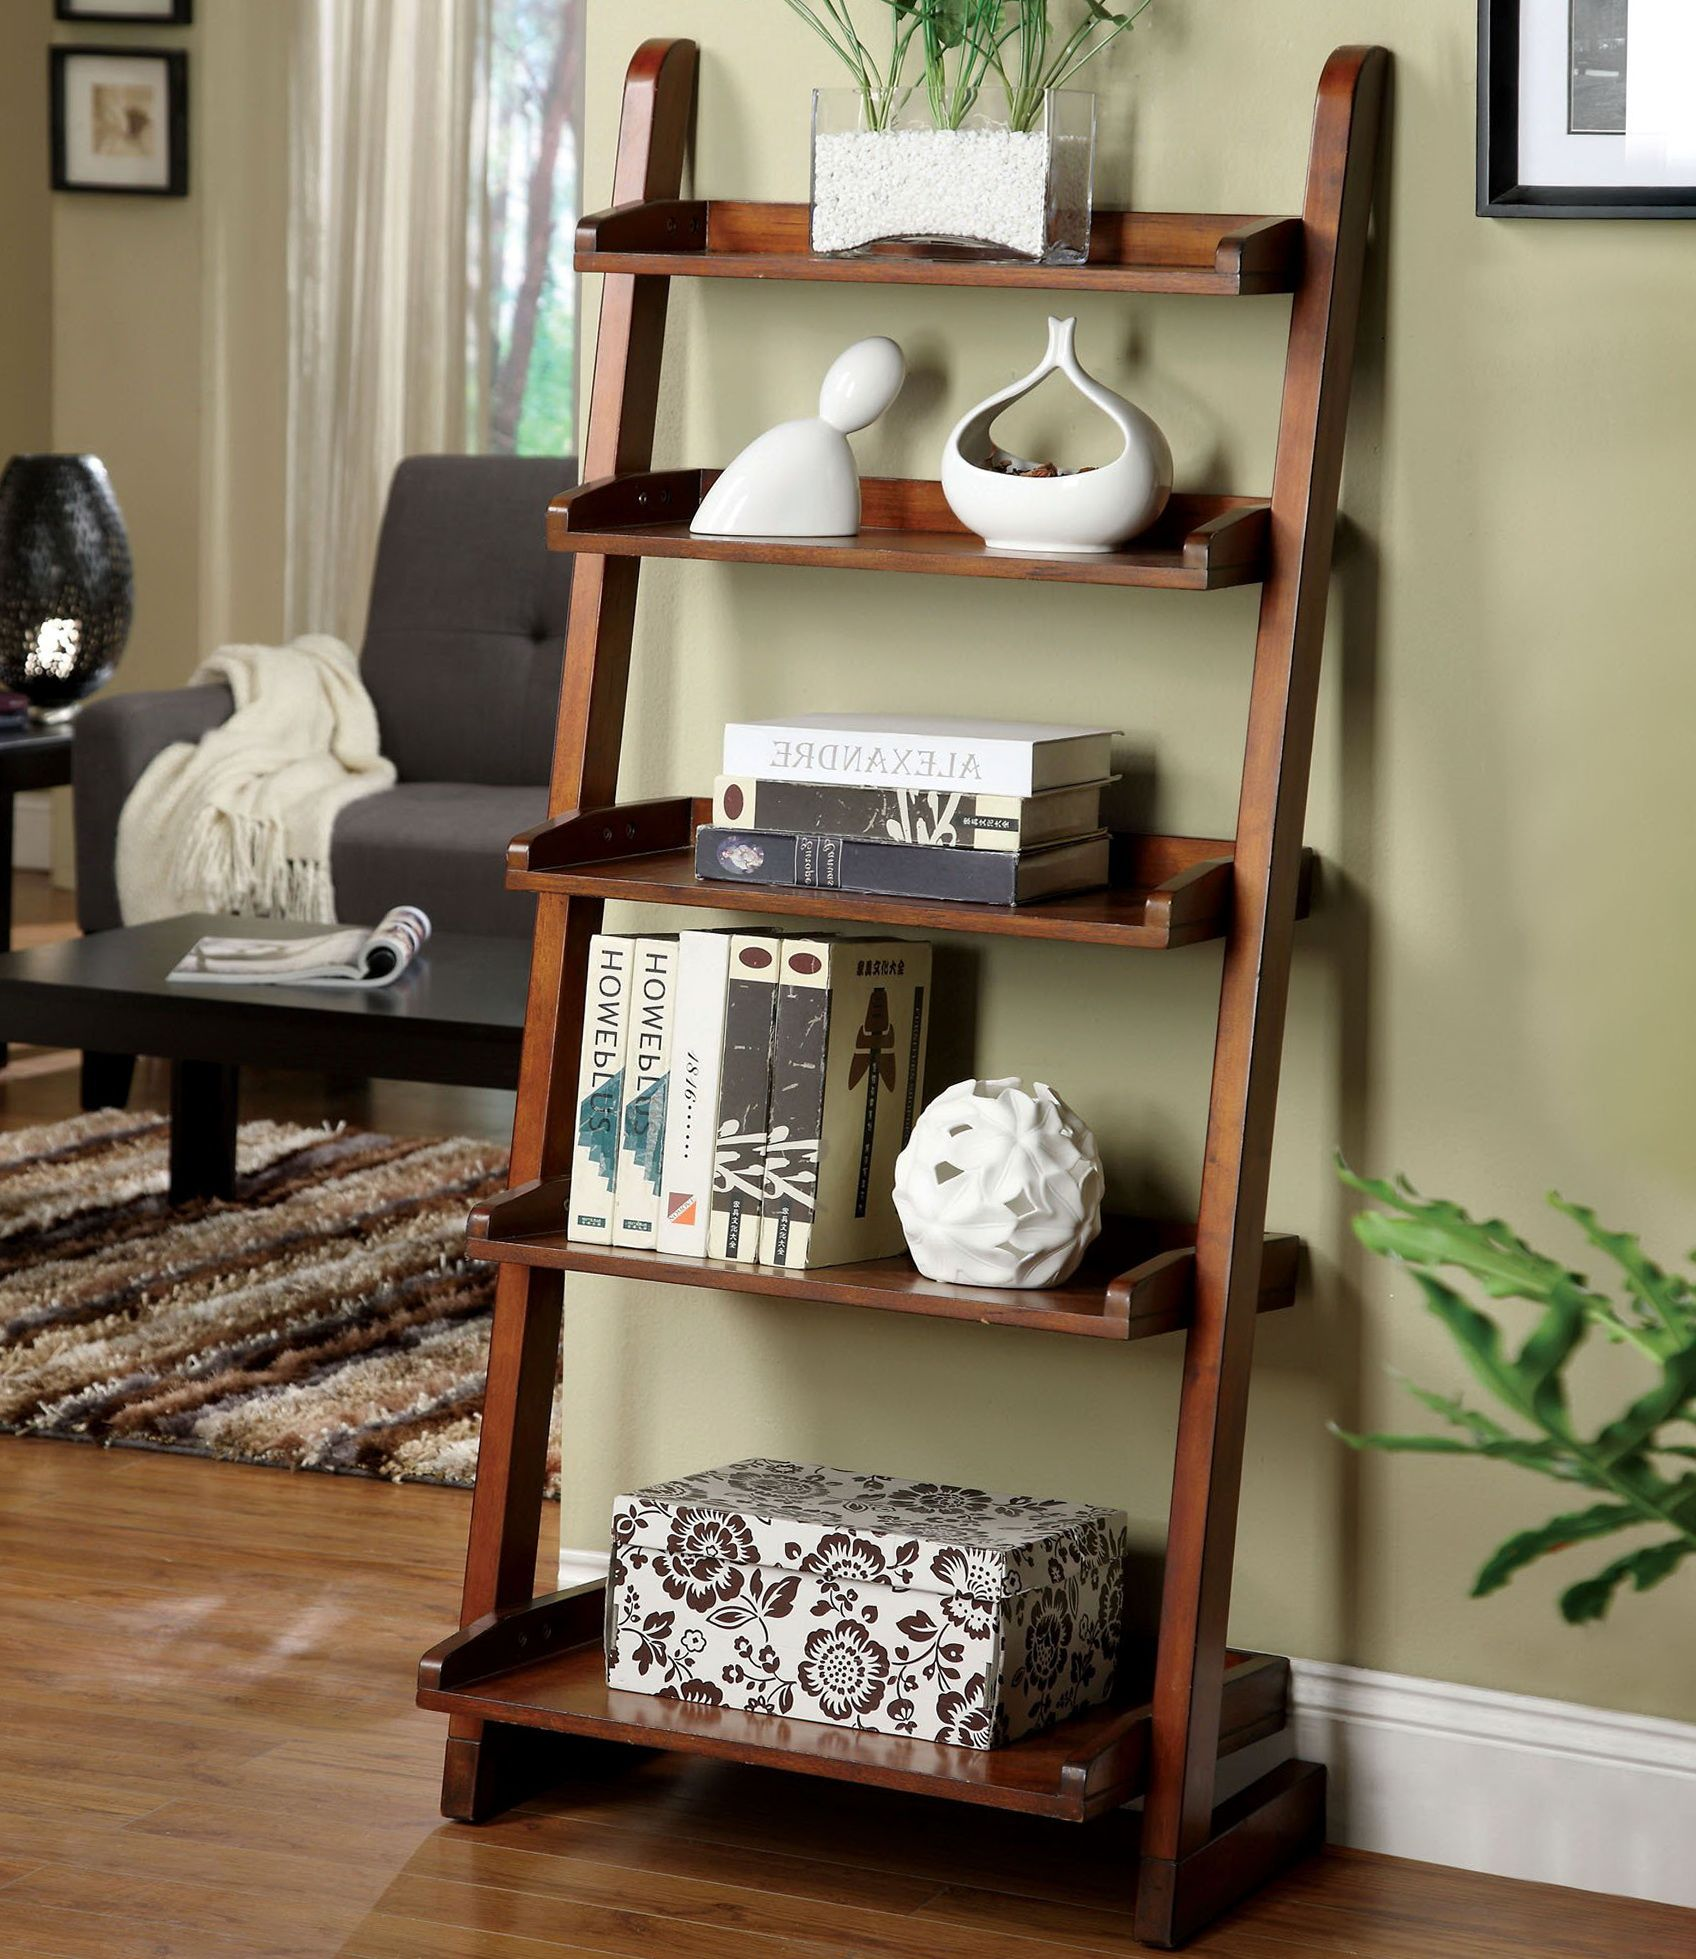 decorating ideas for bookshelf